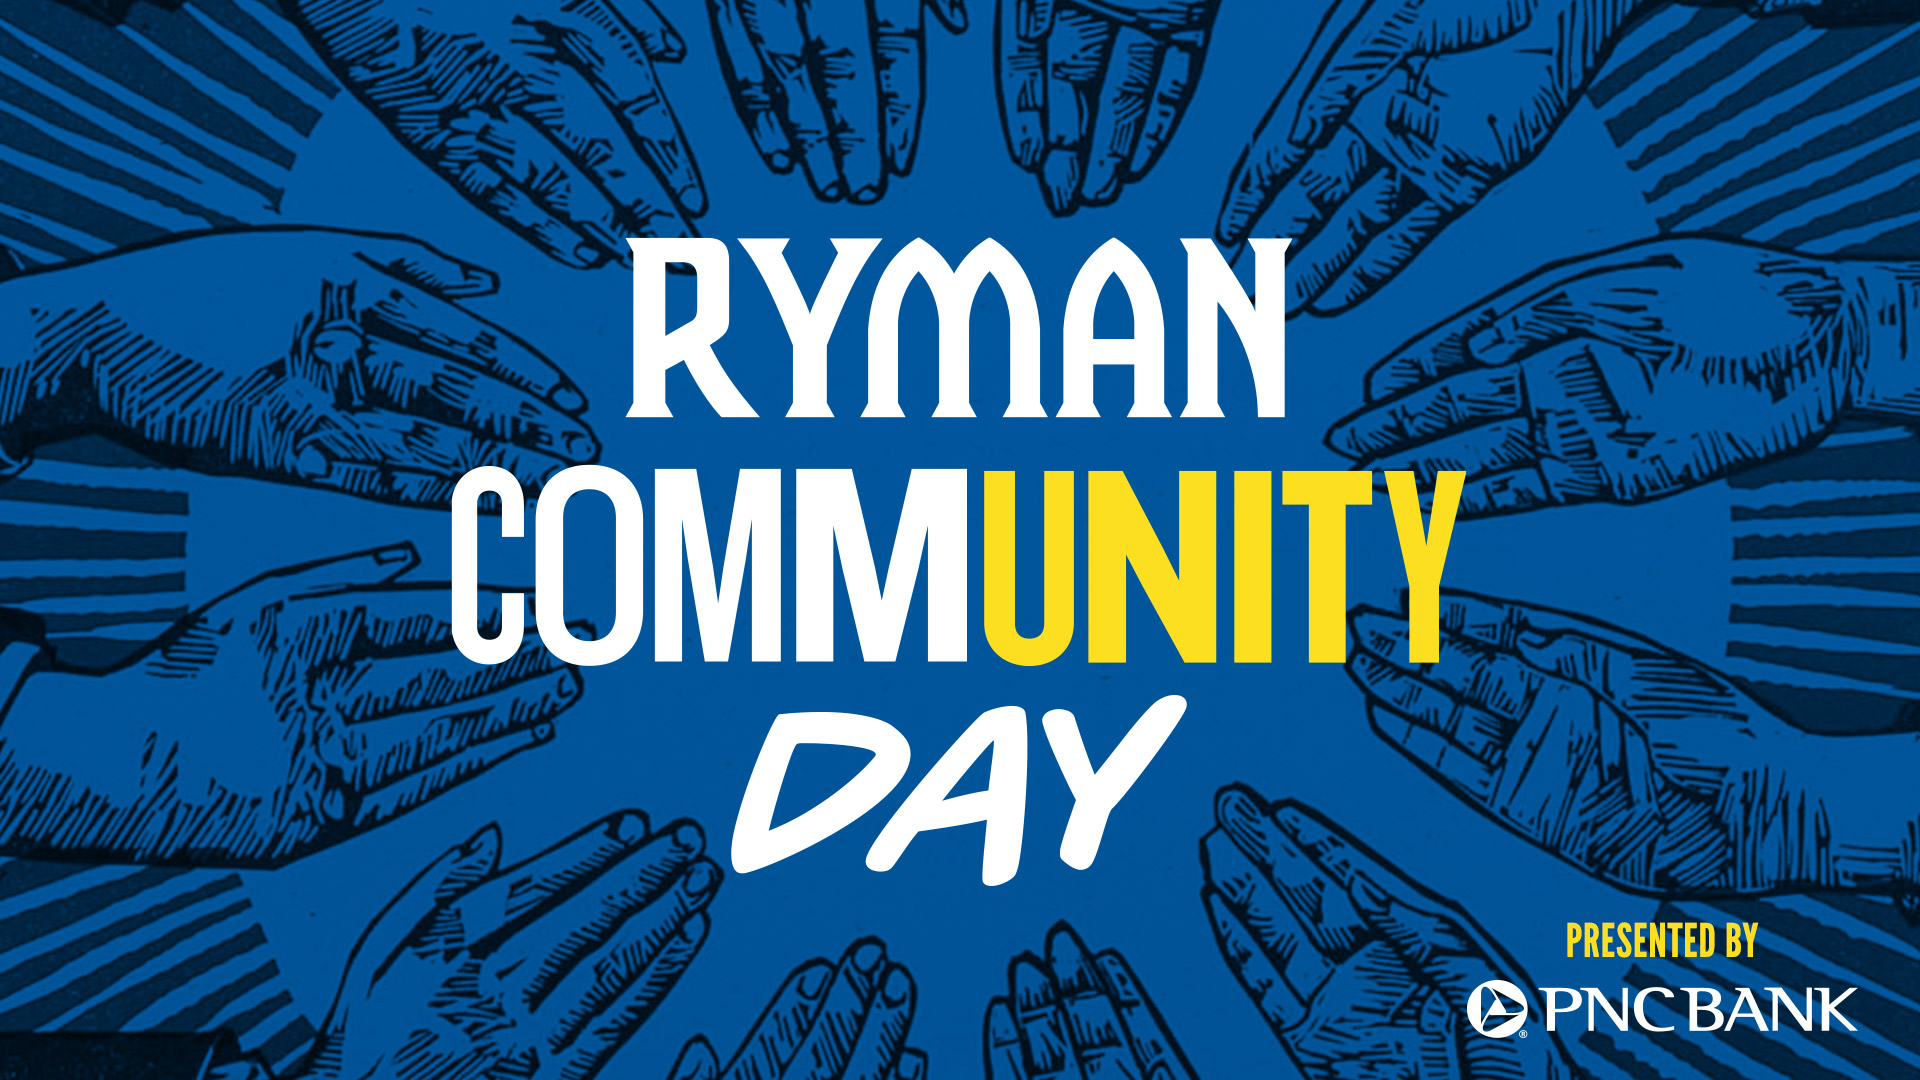 Ryman Community Day